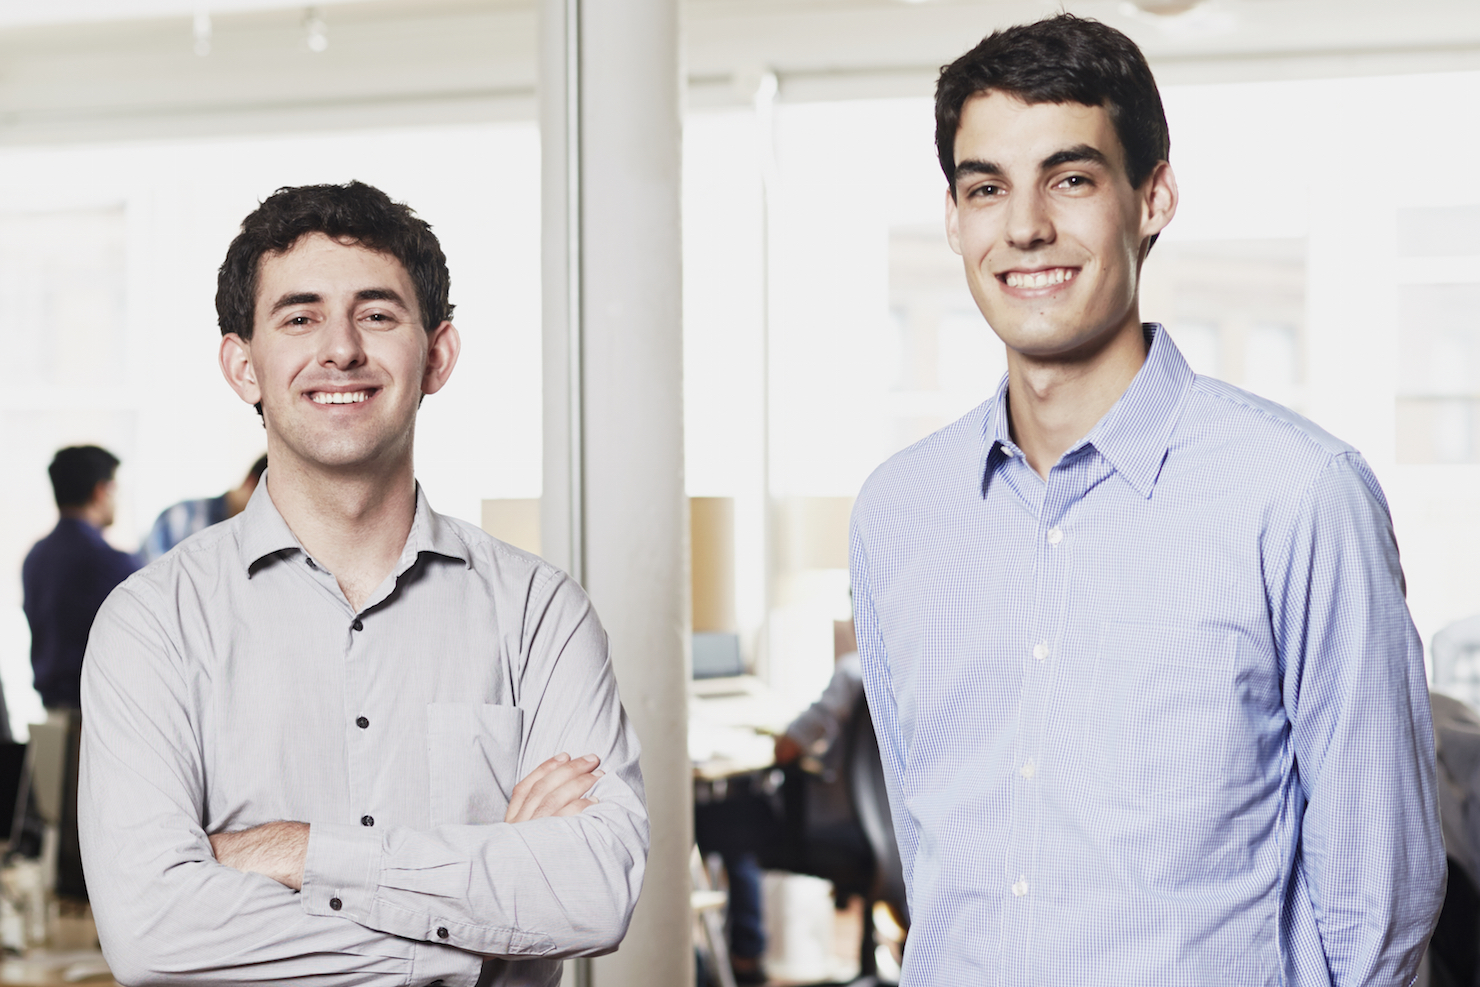 Panorama co-founders Aaron Feuer and Xan Tanner